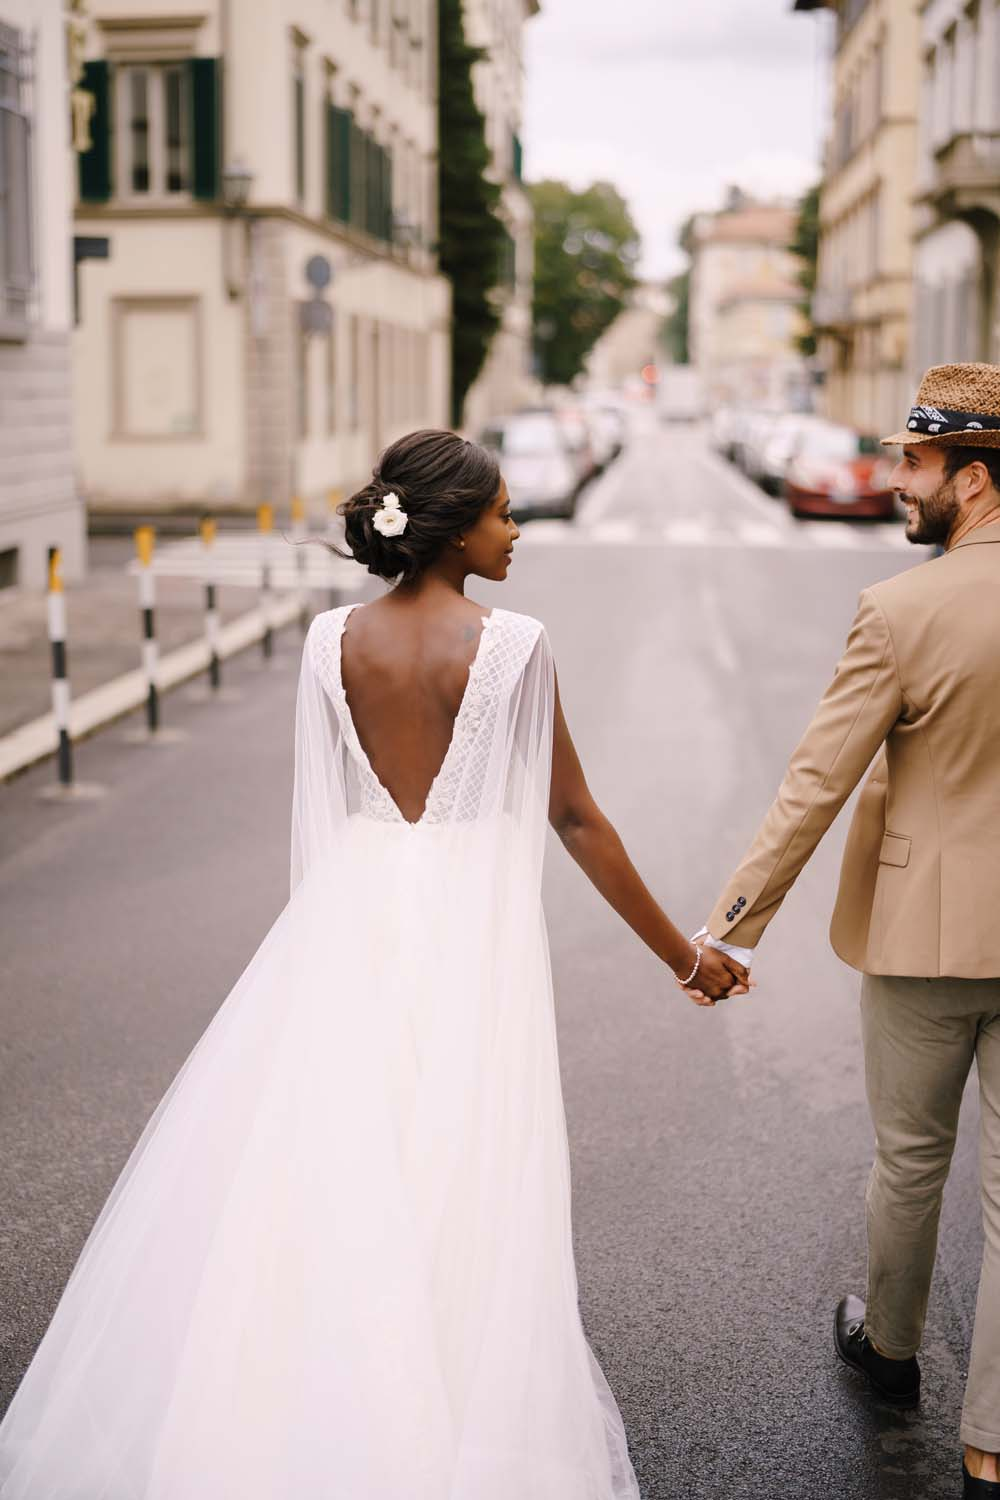 Wedding Hair Tips For Brides With Afro-Textured Hair